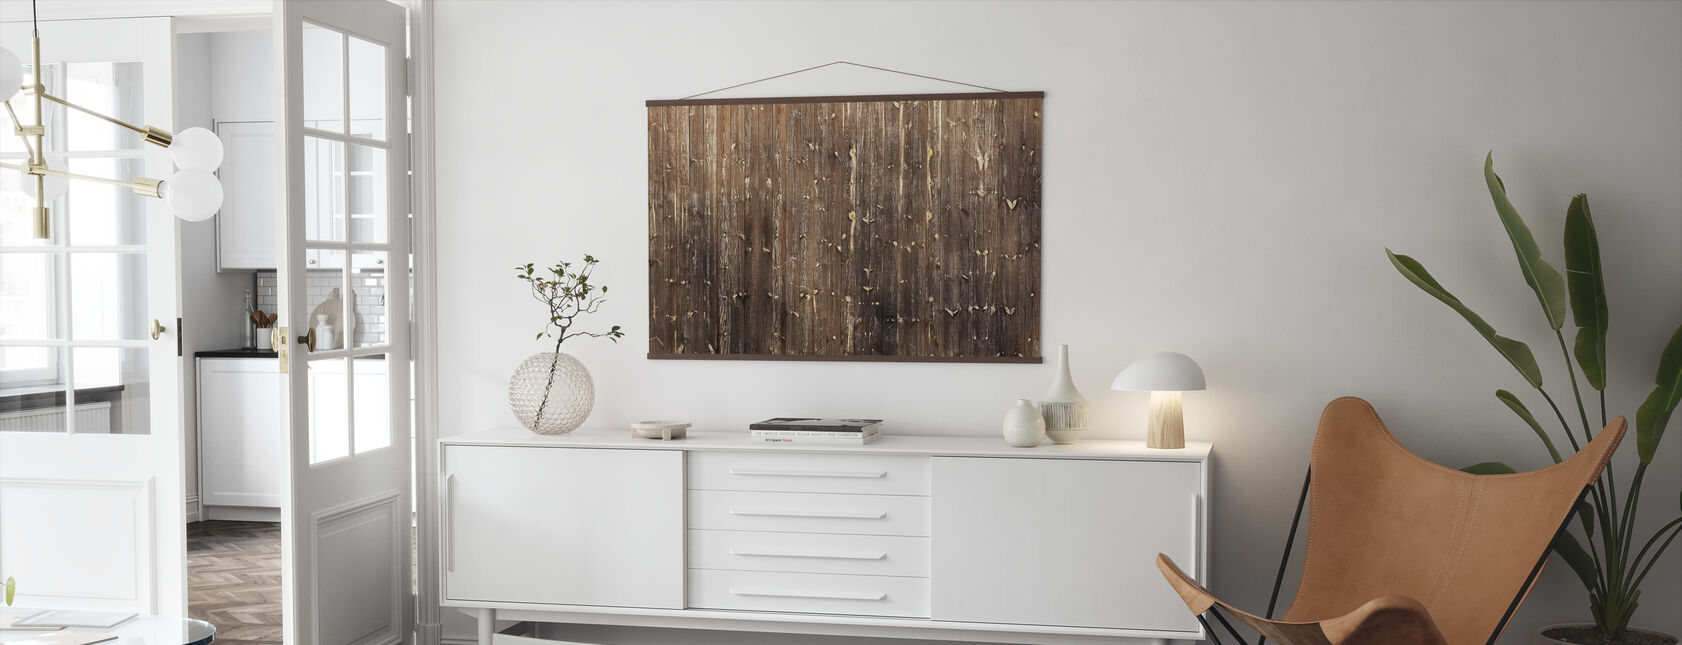 Brown Wooden Wall - Poster - Living Room